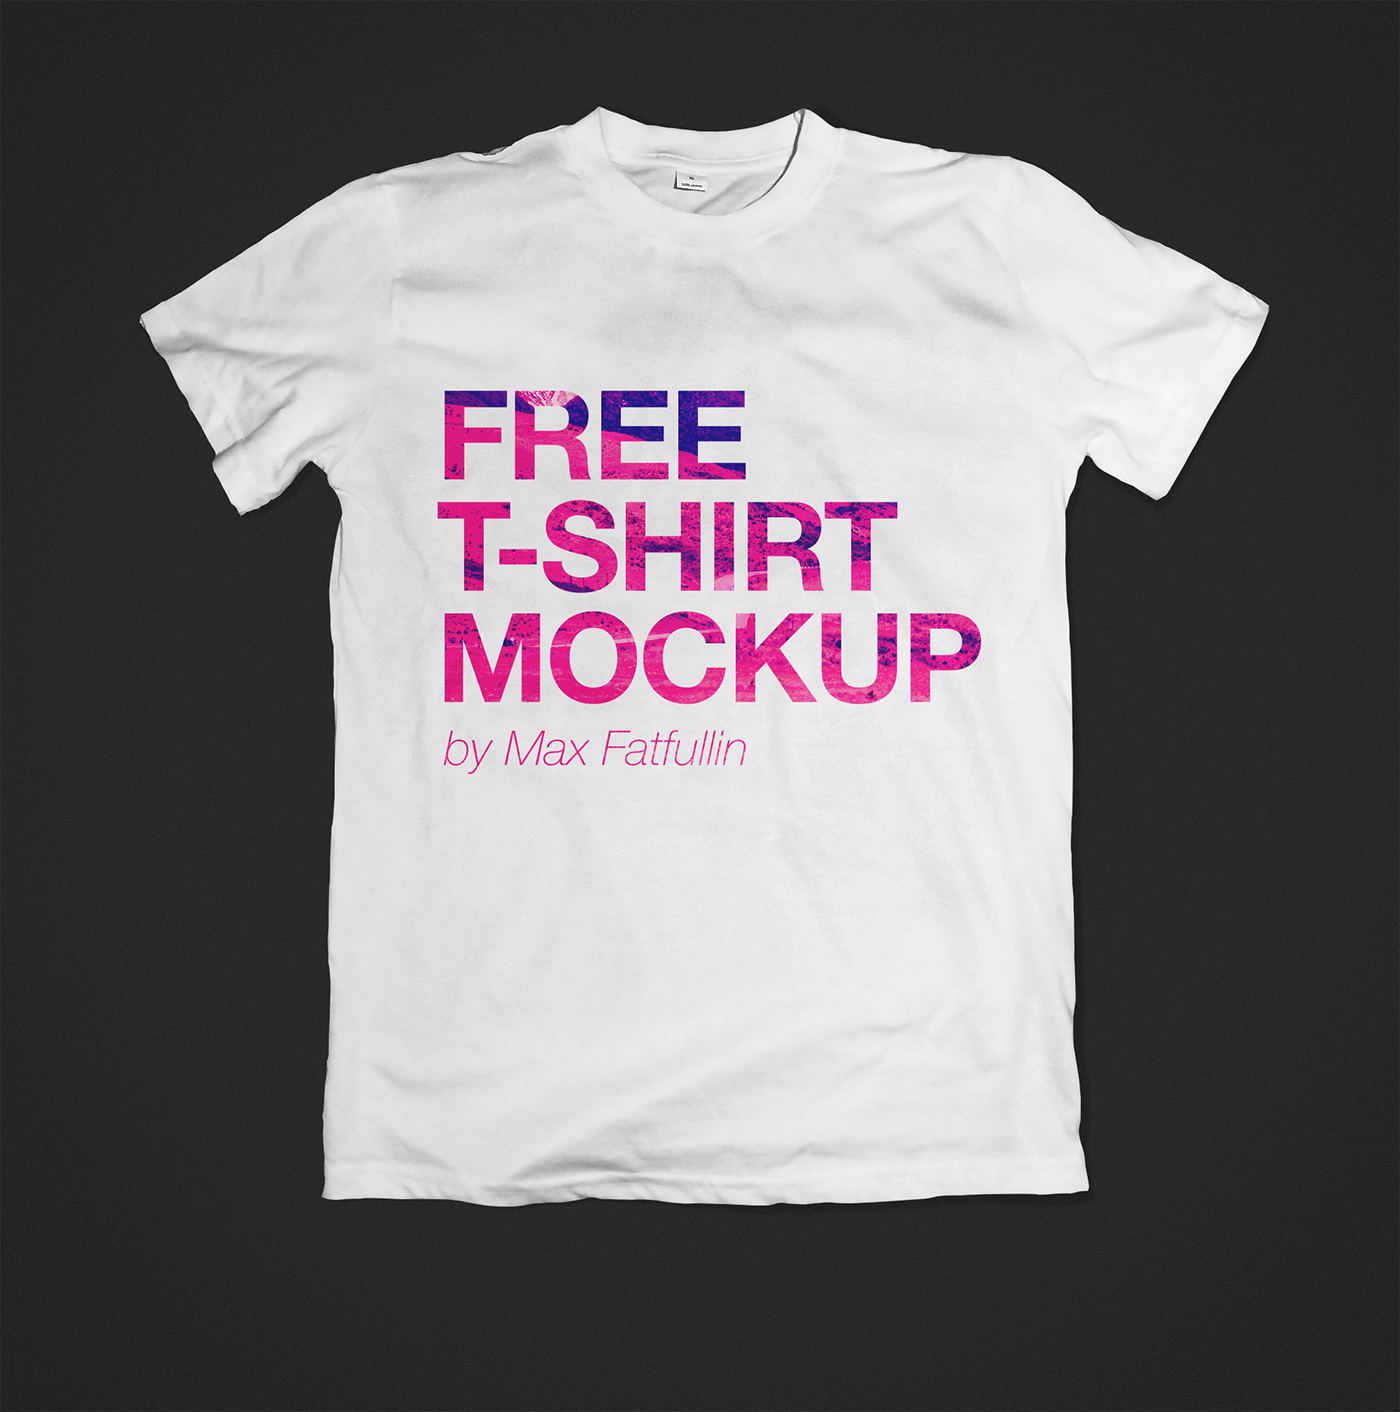 free t shirt mockup psd download